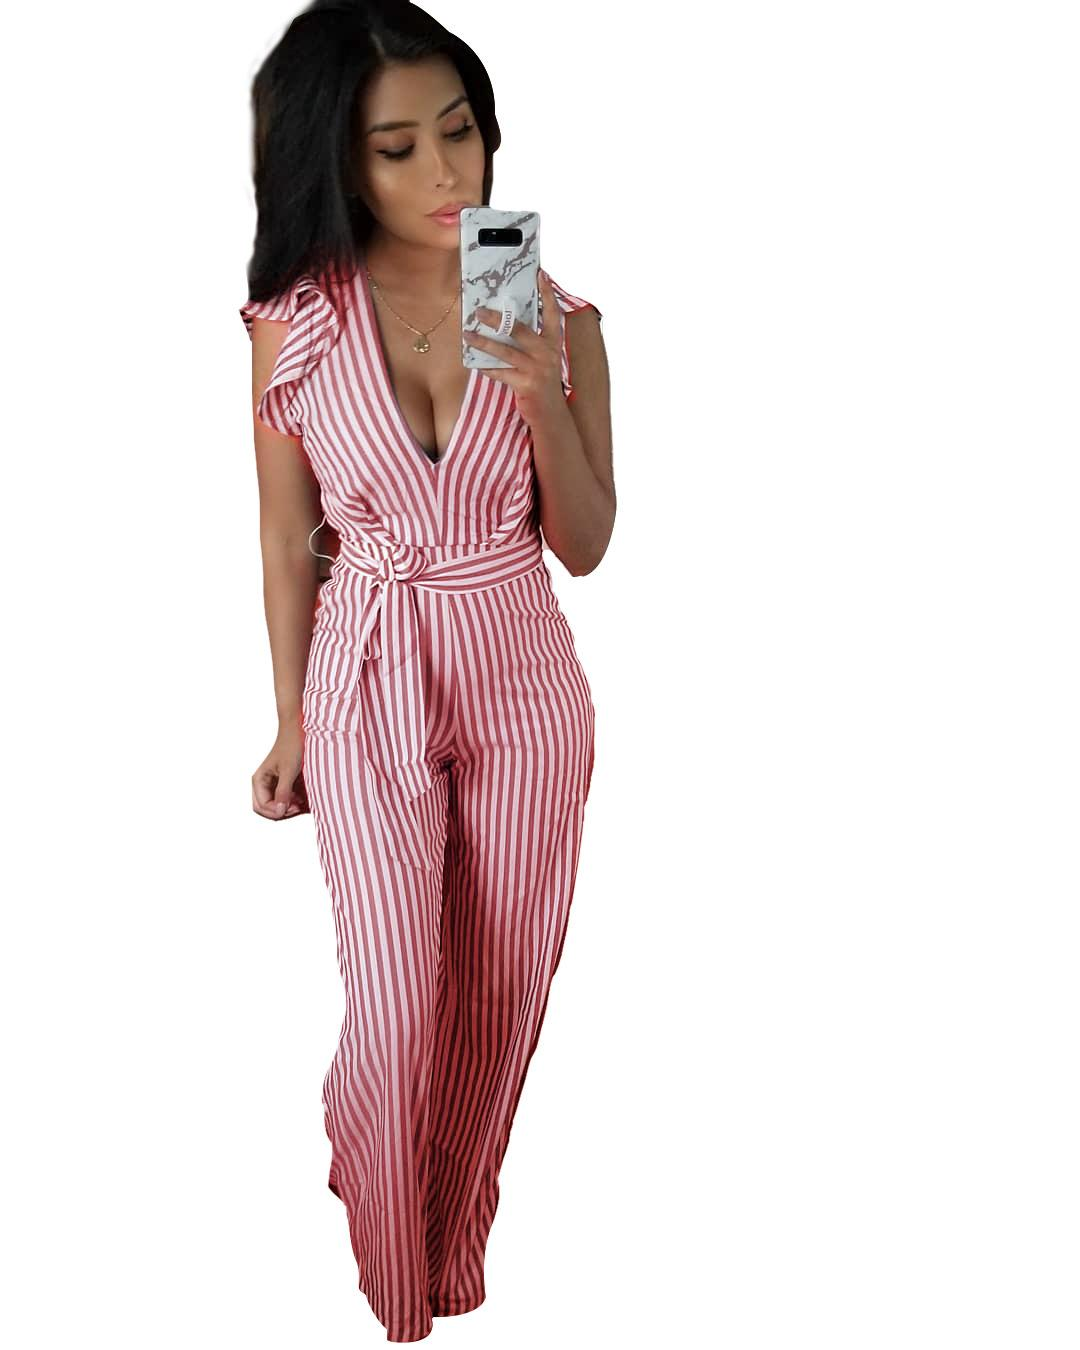 b78d1bae71da 2019 Women V Neck Striped Jumpsuit Ruffle Sleeves Backless Long Pants Romper  Outfits With Belt Q101 From Boom1994